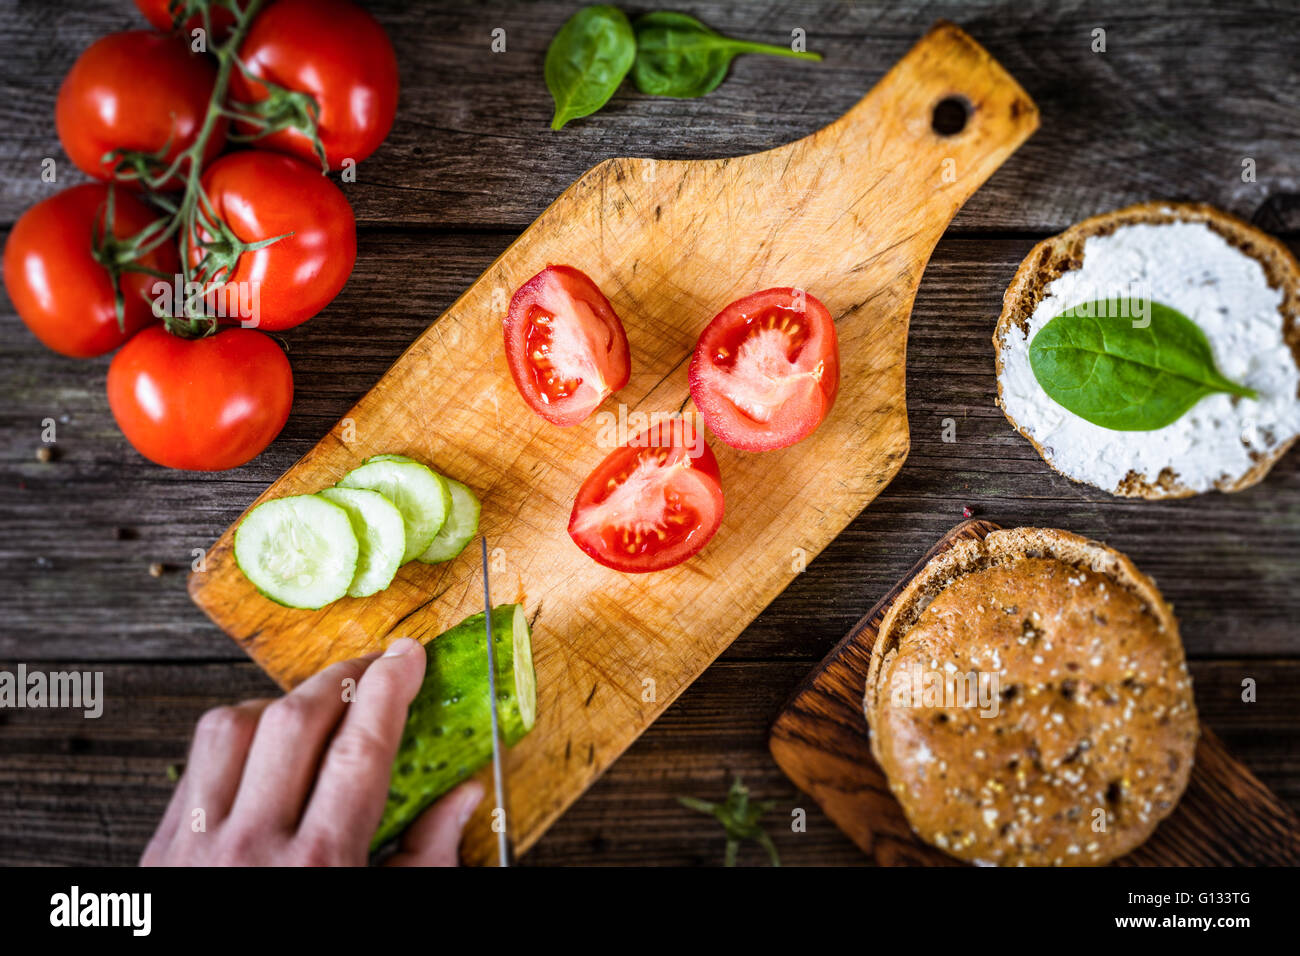 Chef cutting vegetables for salad. Process of cutting vegetables to make a healthy sandwich. Top view, selective - Stock Image